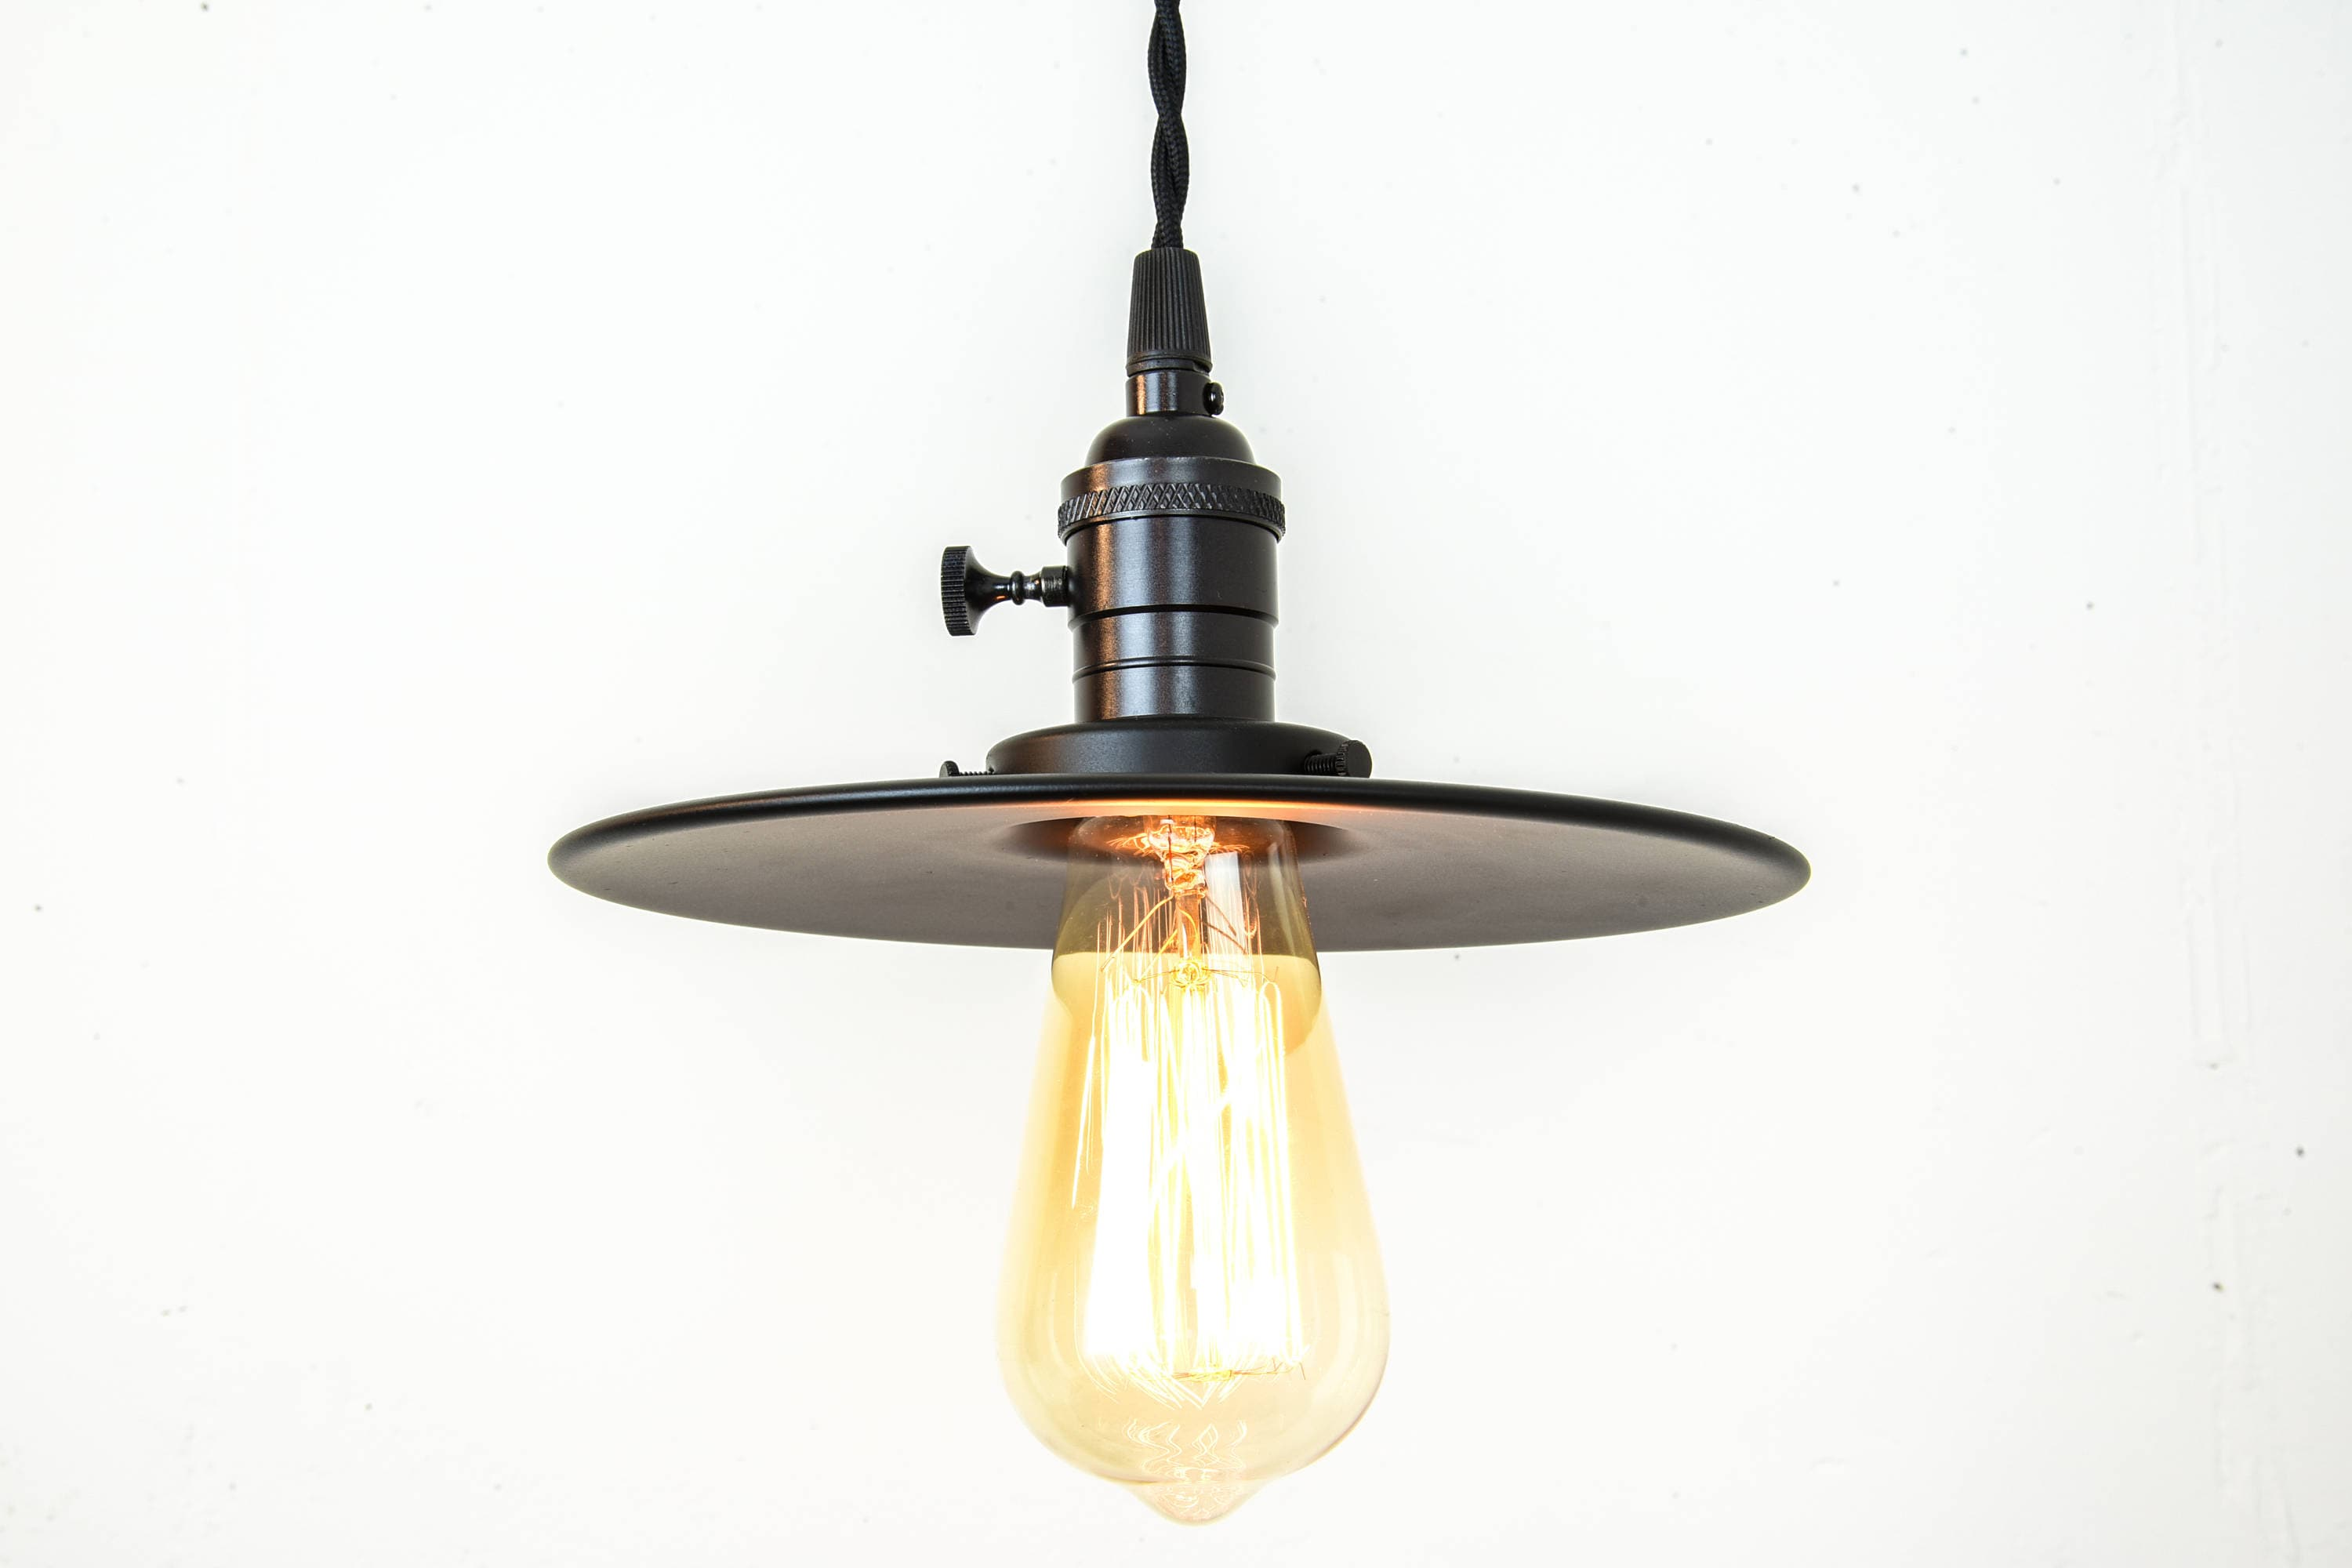 plug in industrial lighting. Industrial Lighting - Black Pendant Lights Farmhouse Light Flat Shade Matte Rustic Plug In Edison Bulb D